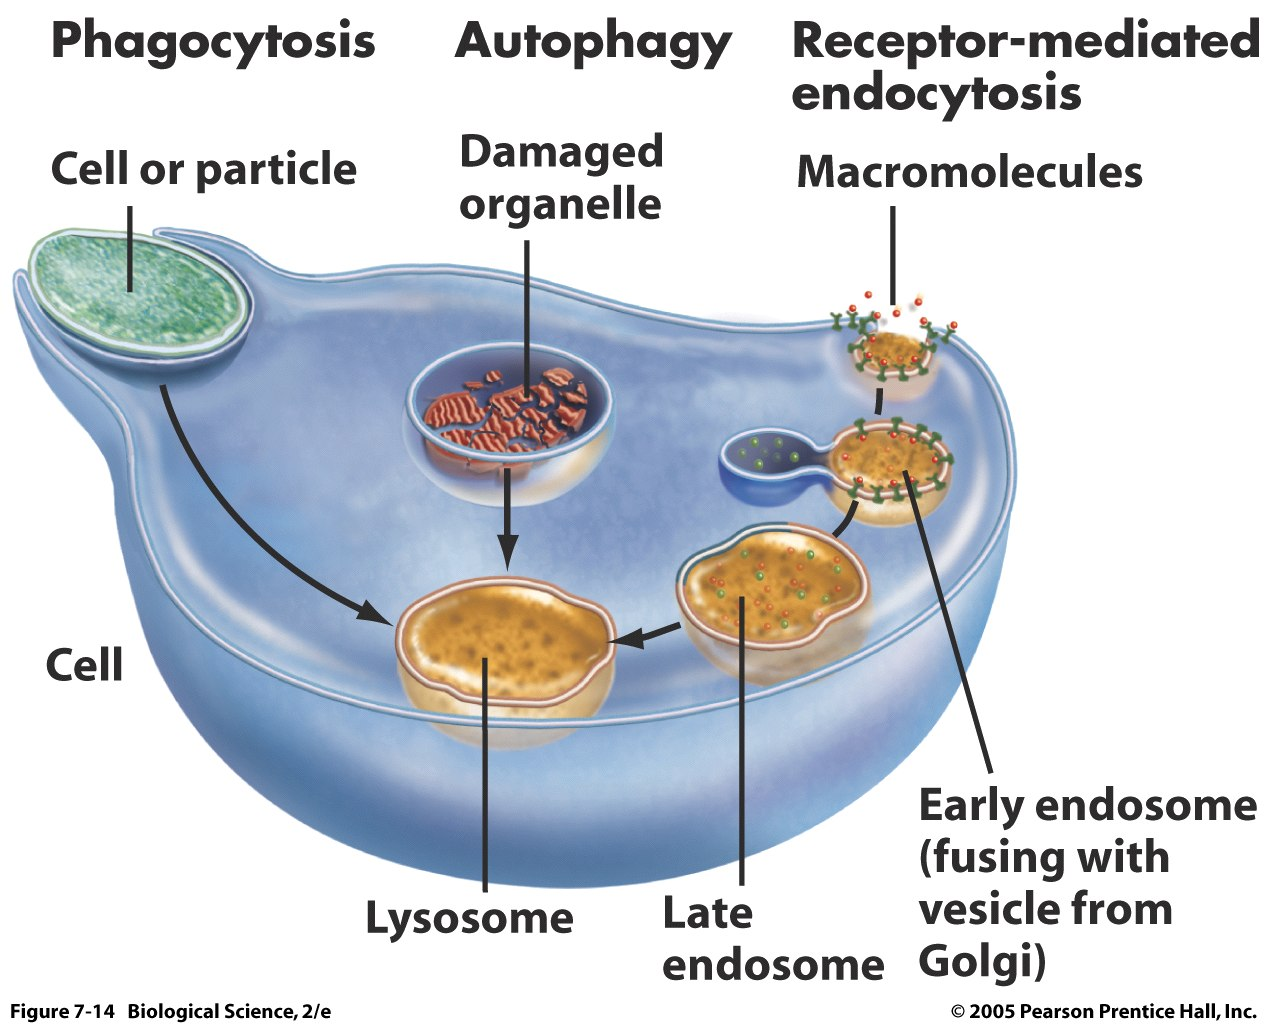 Biology Pictures: The Role of Lysosome